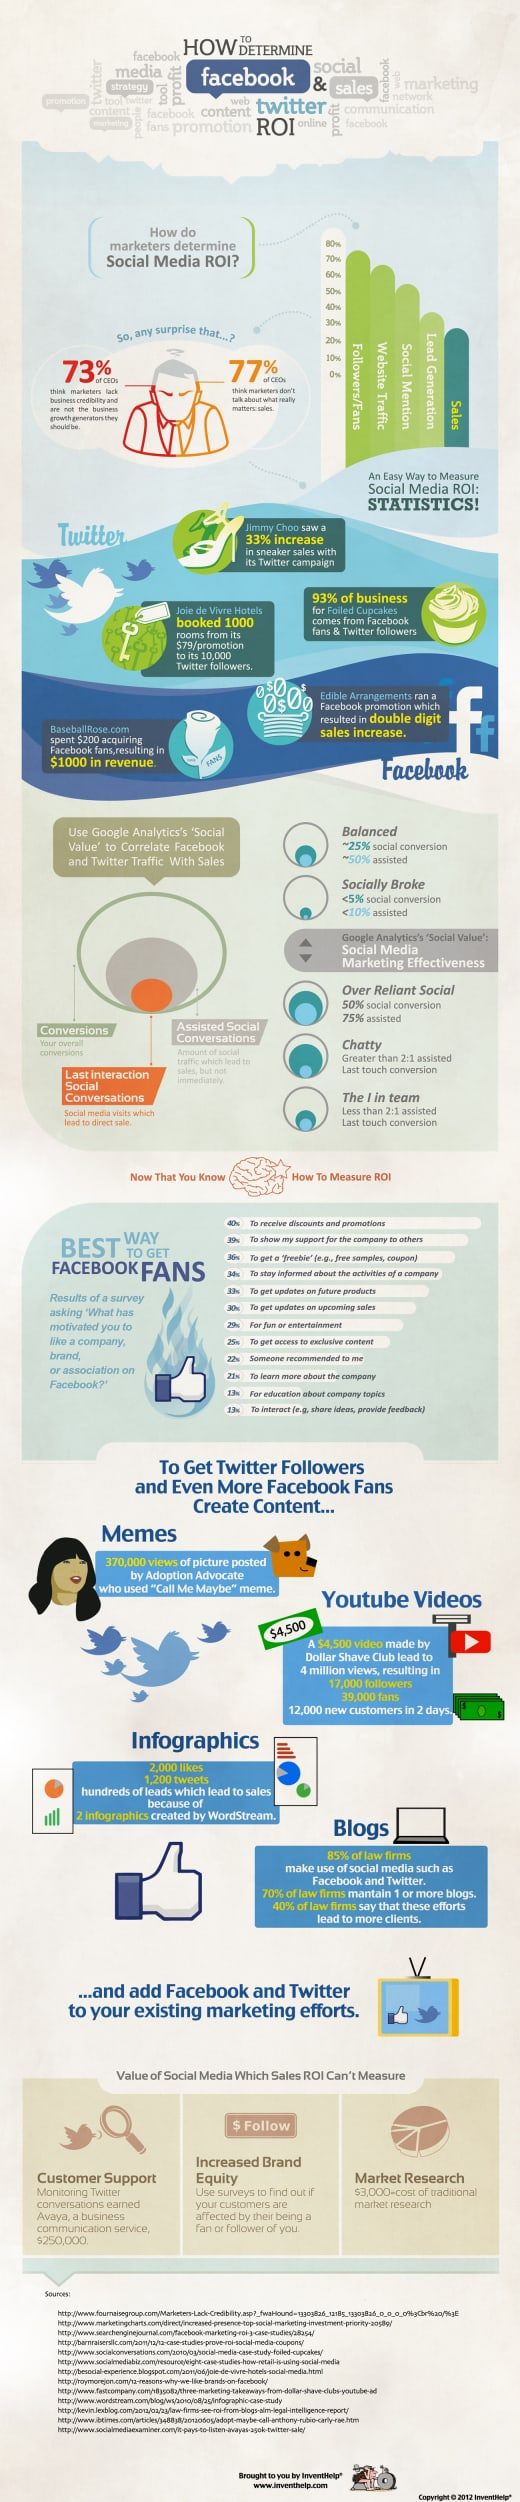 Facebook & Twitter Social Media ROI [INFOGRAPHIC]